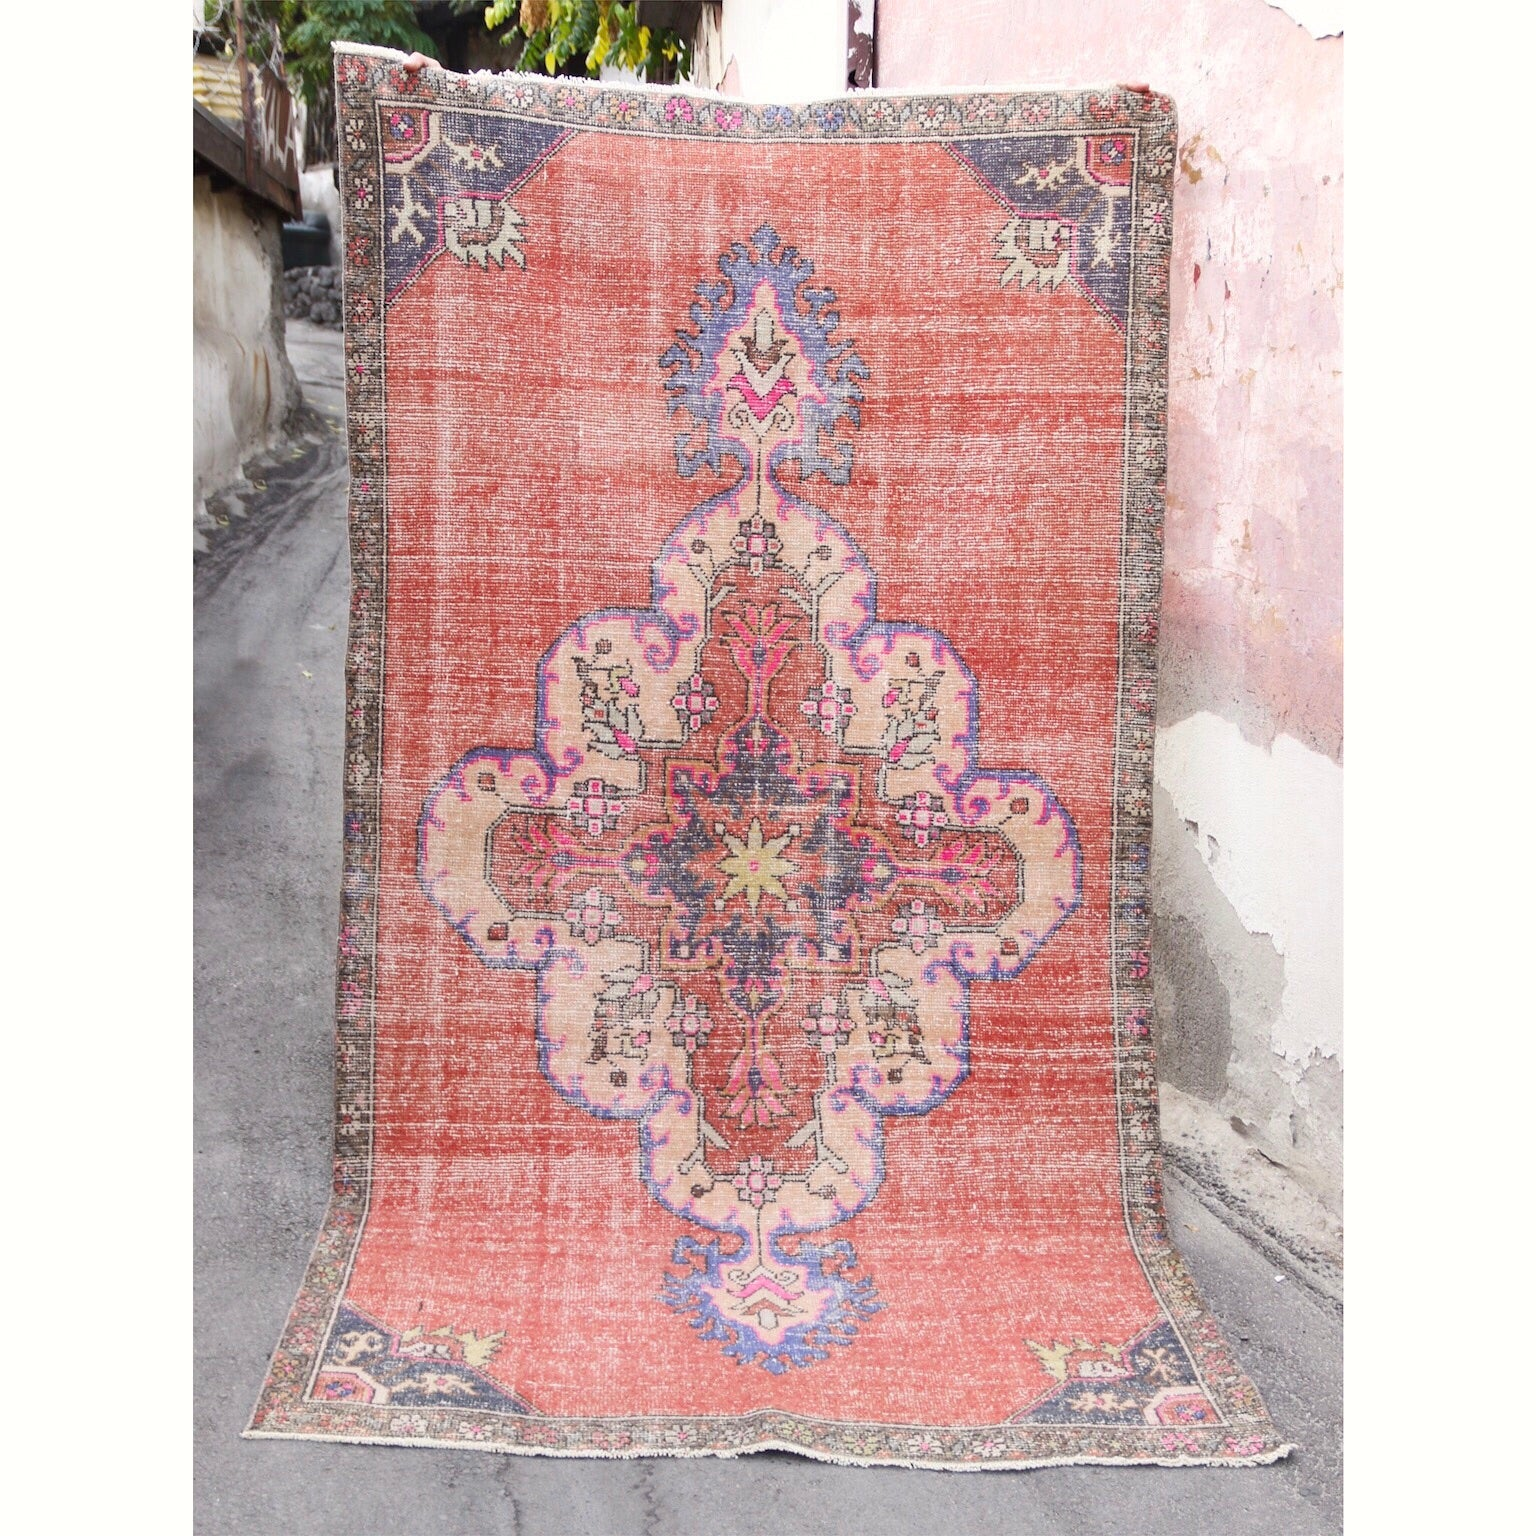 his handwoven vintage Turkish rug has amazing colors. Orange background with vibrant purple and pink accents. Konya.